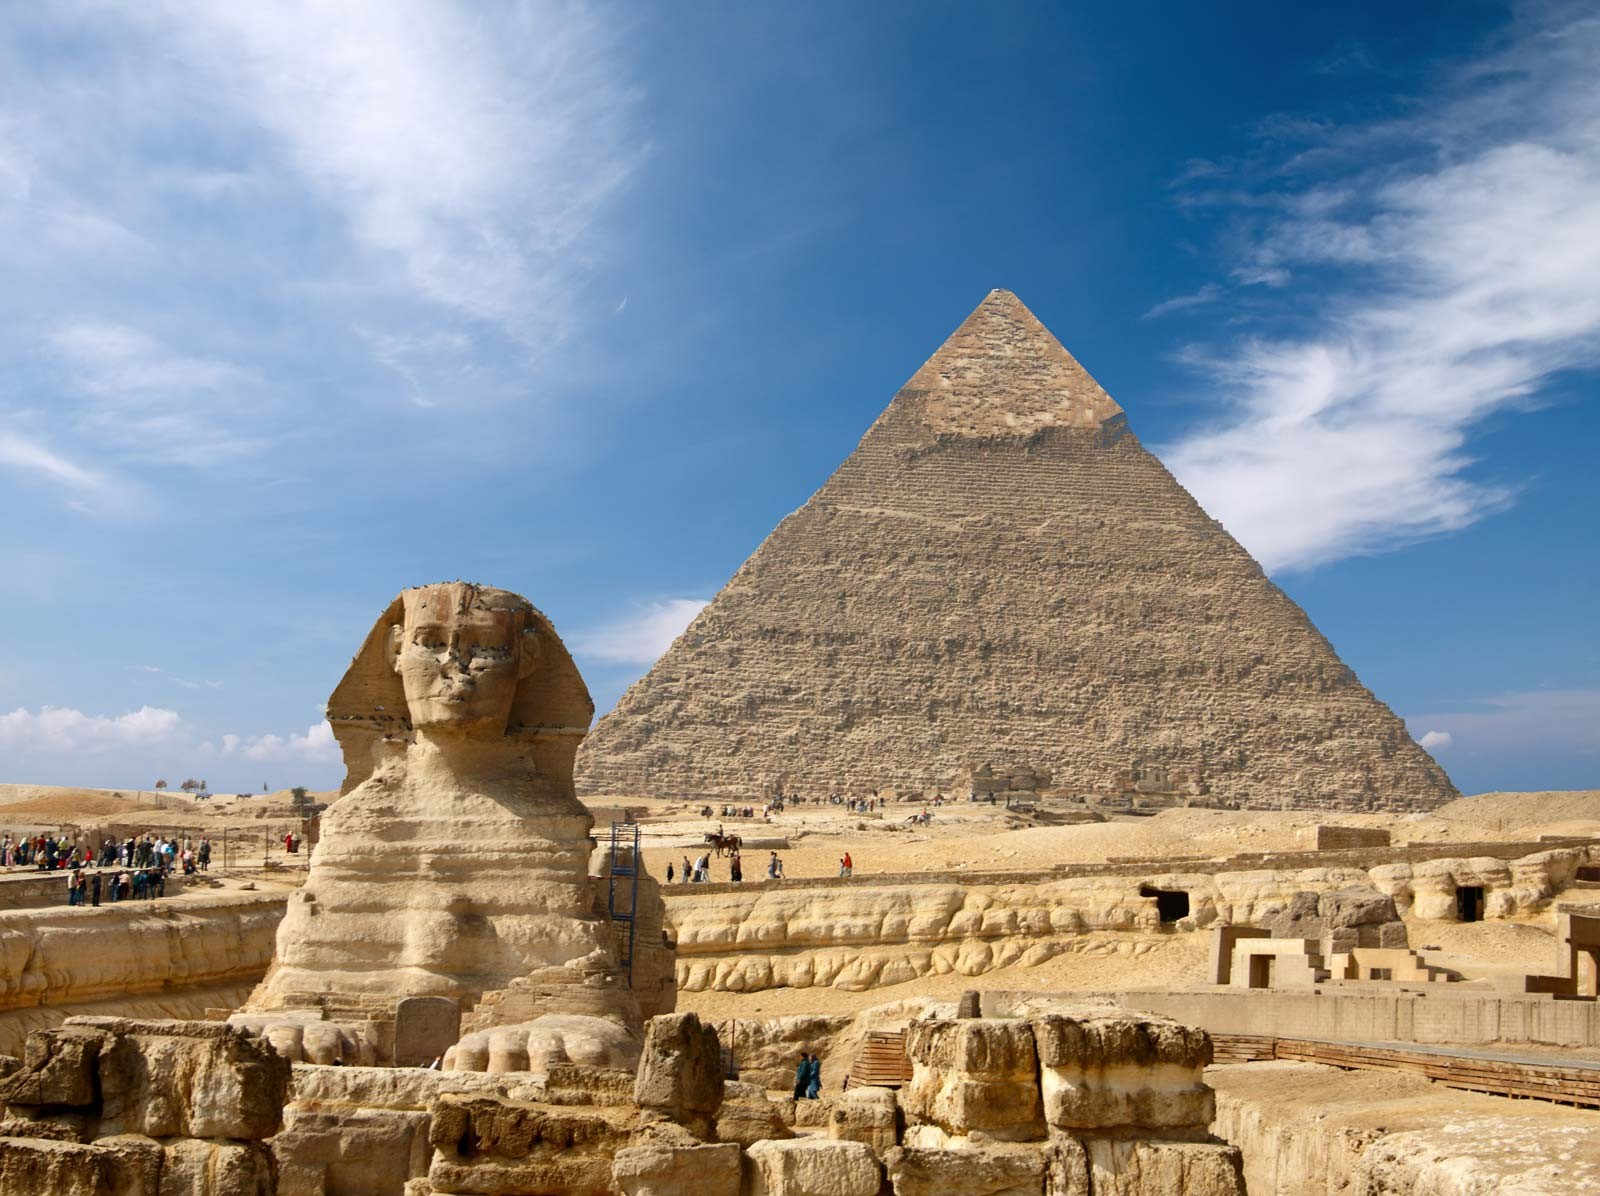 Great-Sphinx-of-Giza.jpg